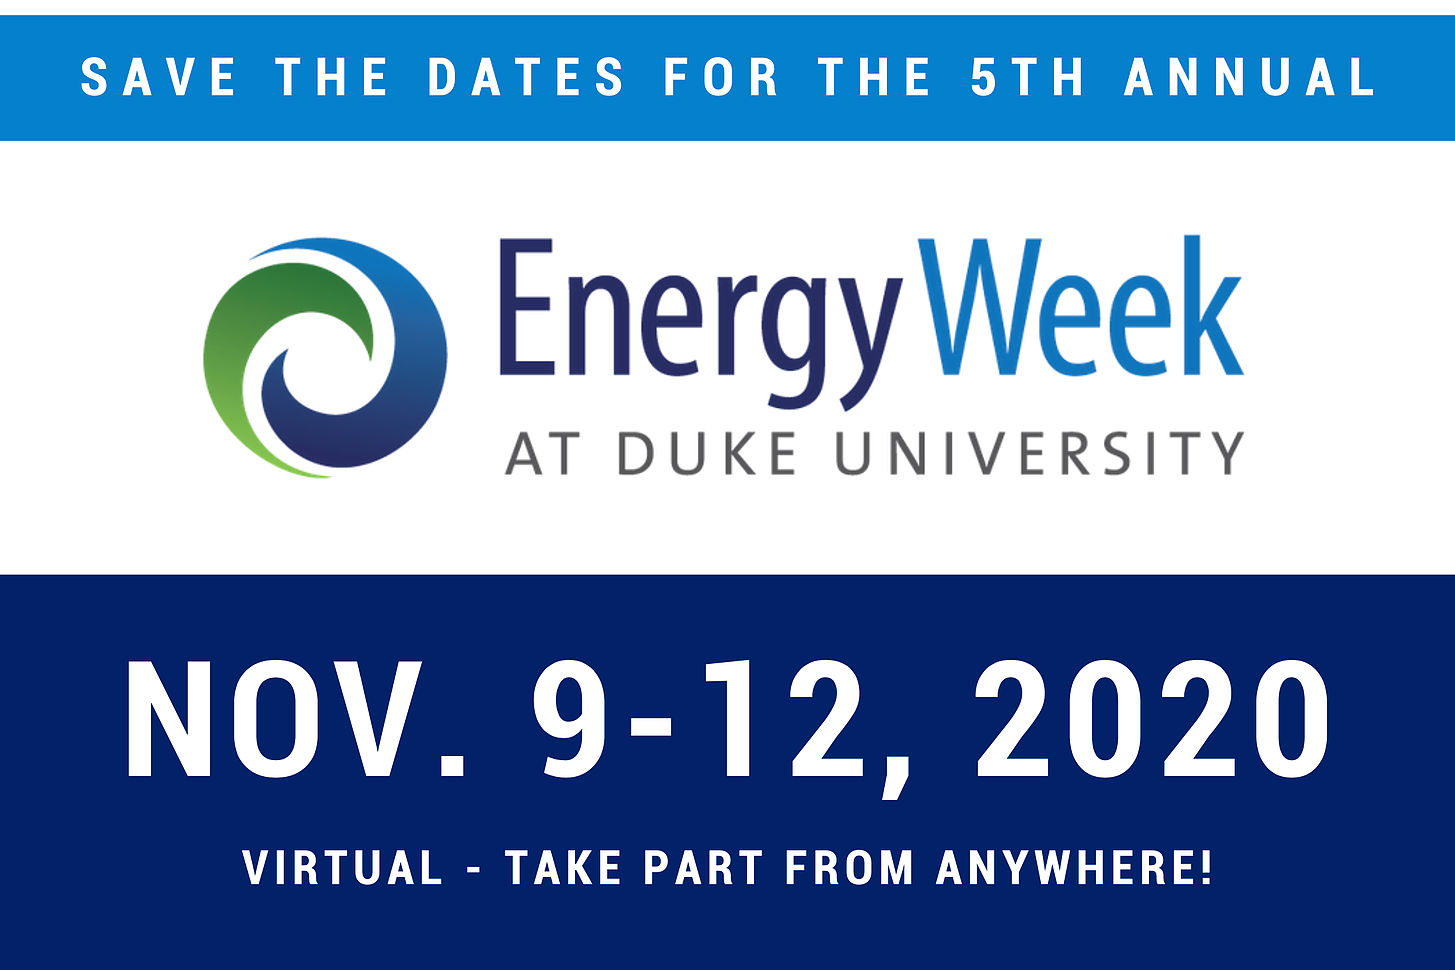 Save the dates for Energy Week 2020!